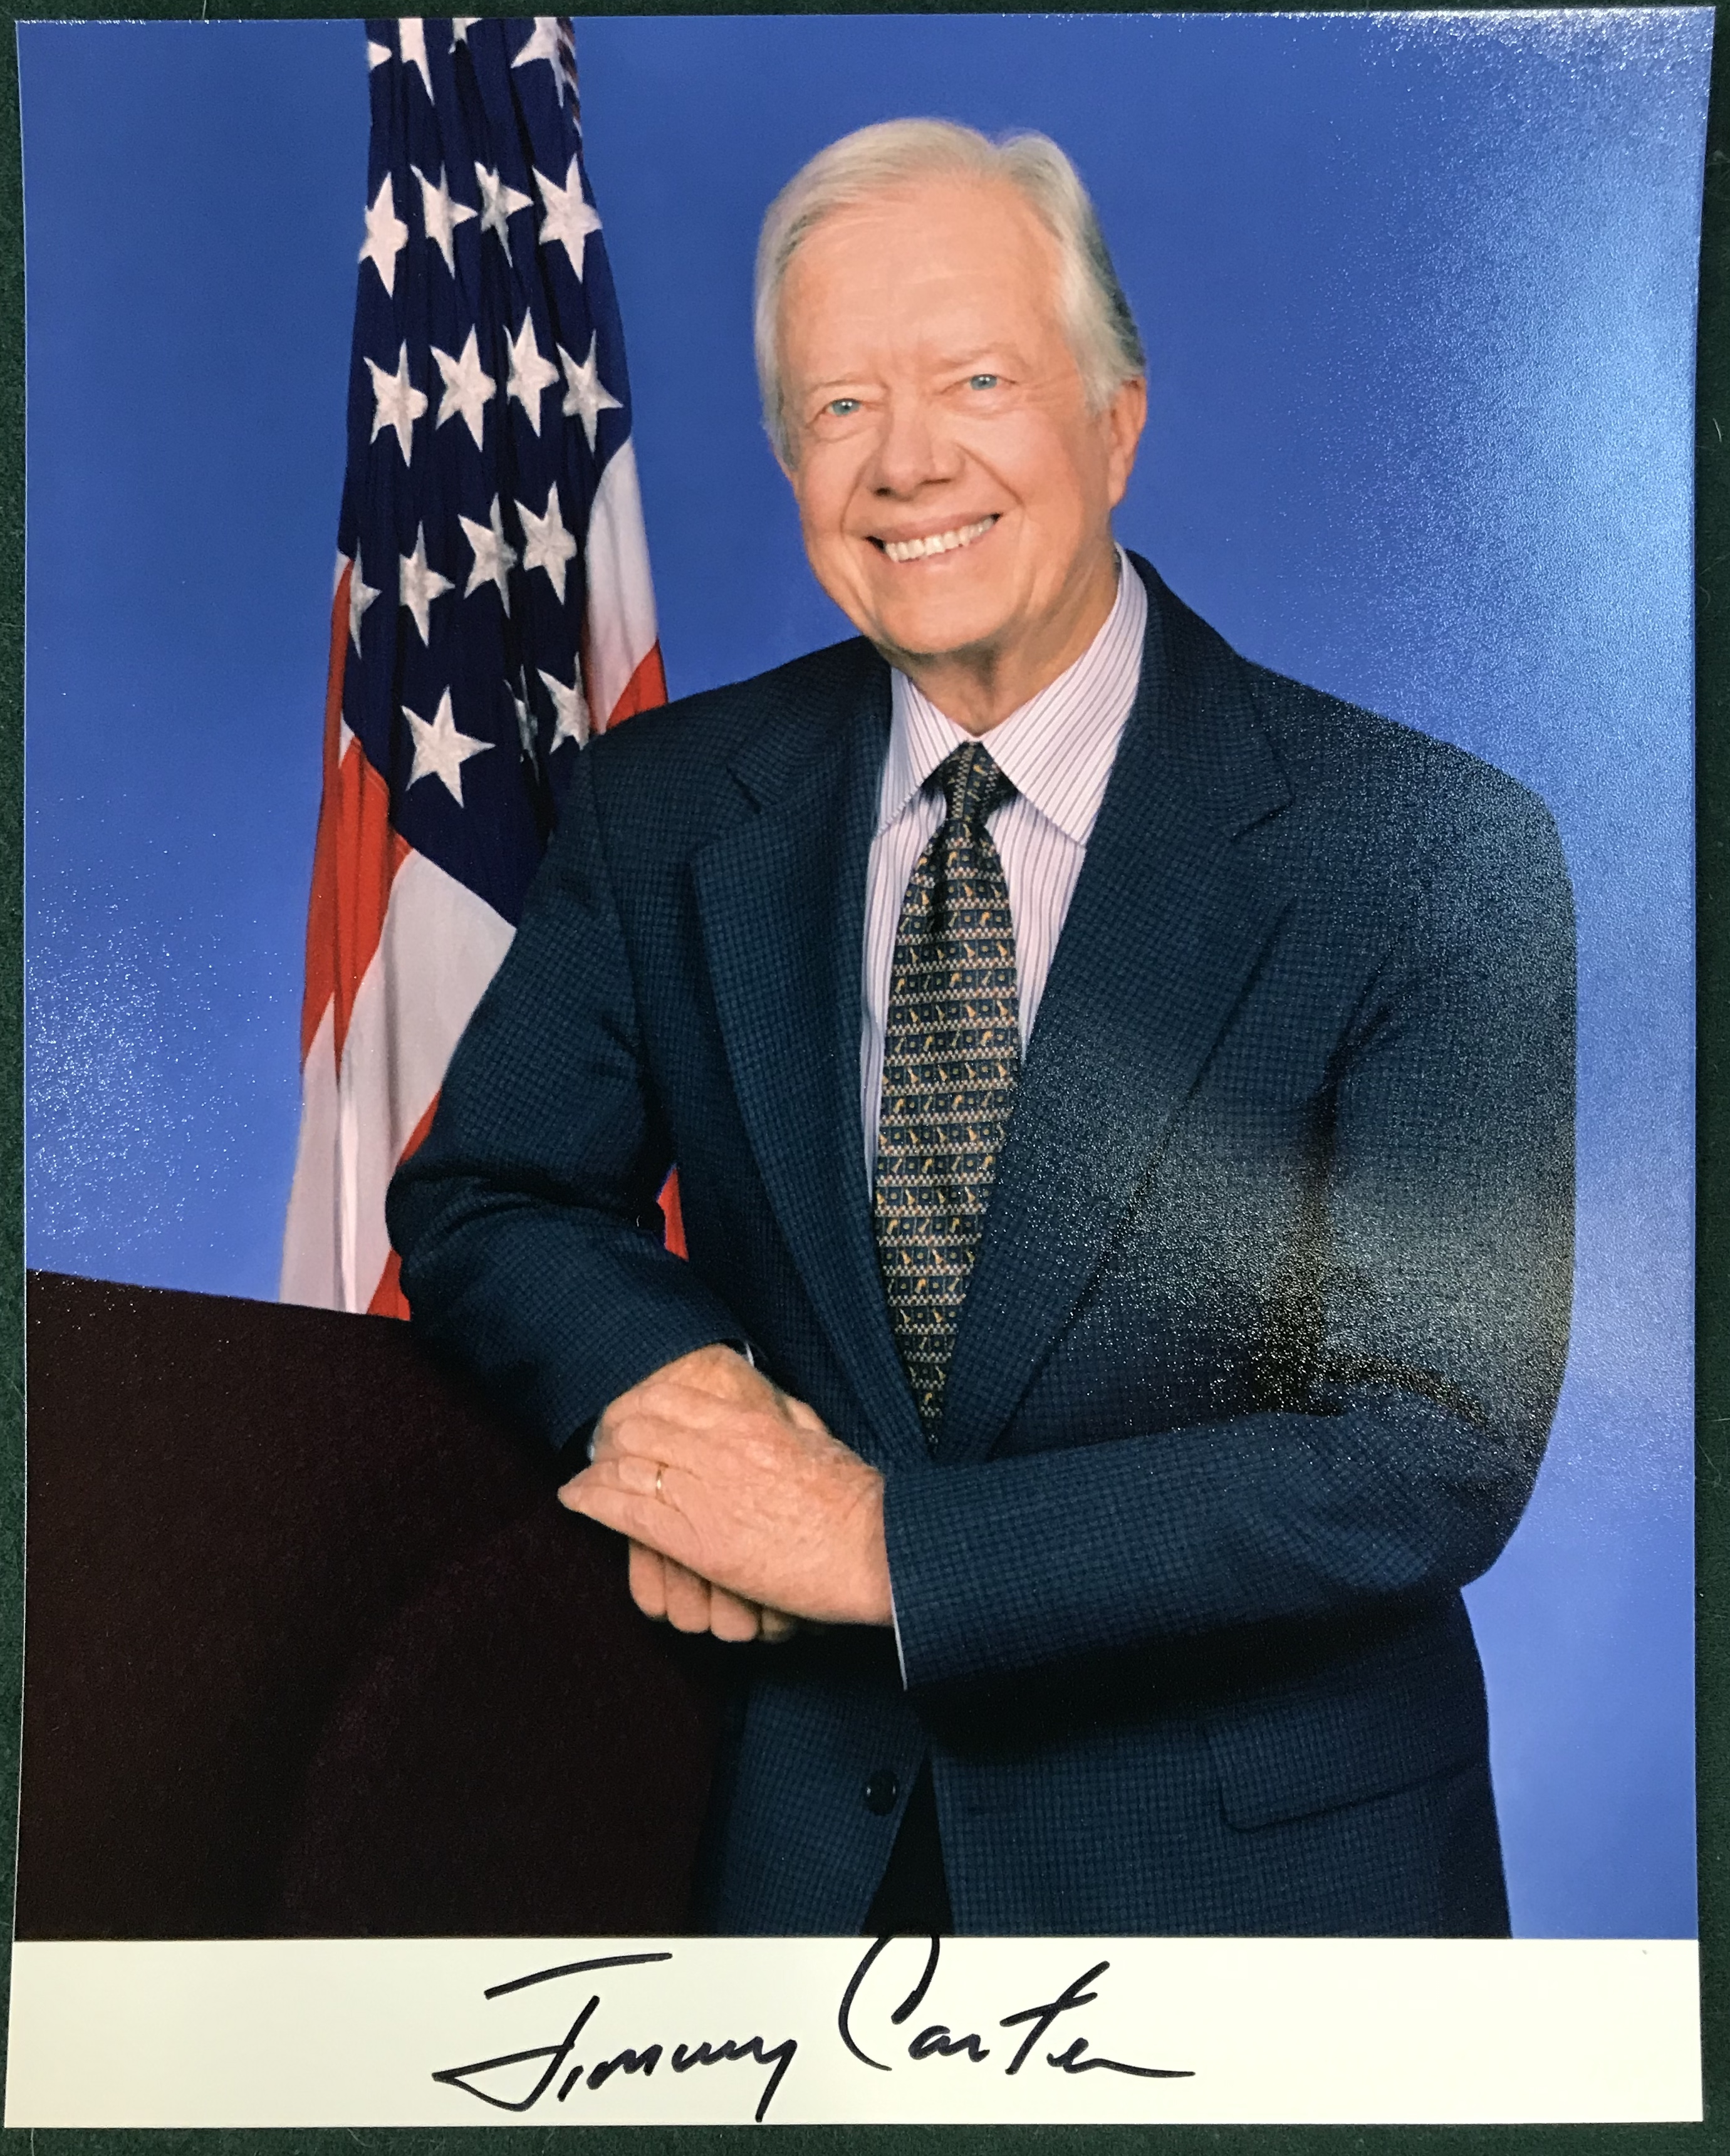 President Carter Autographed Photo